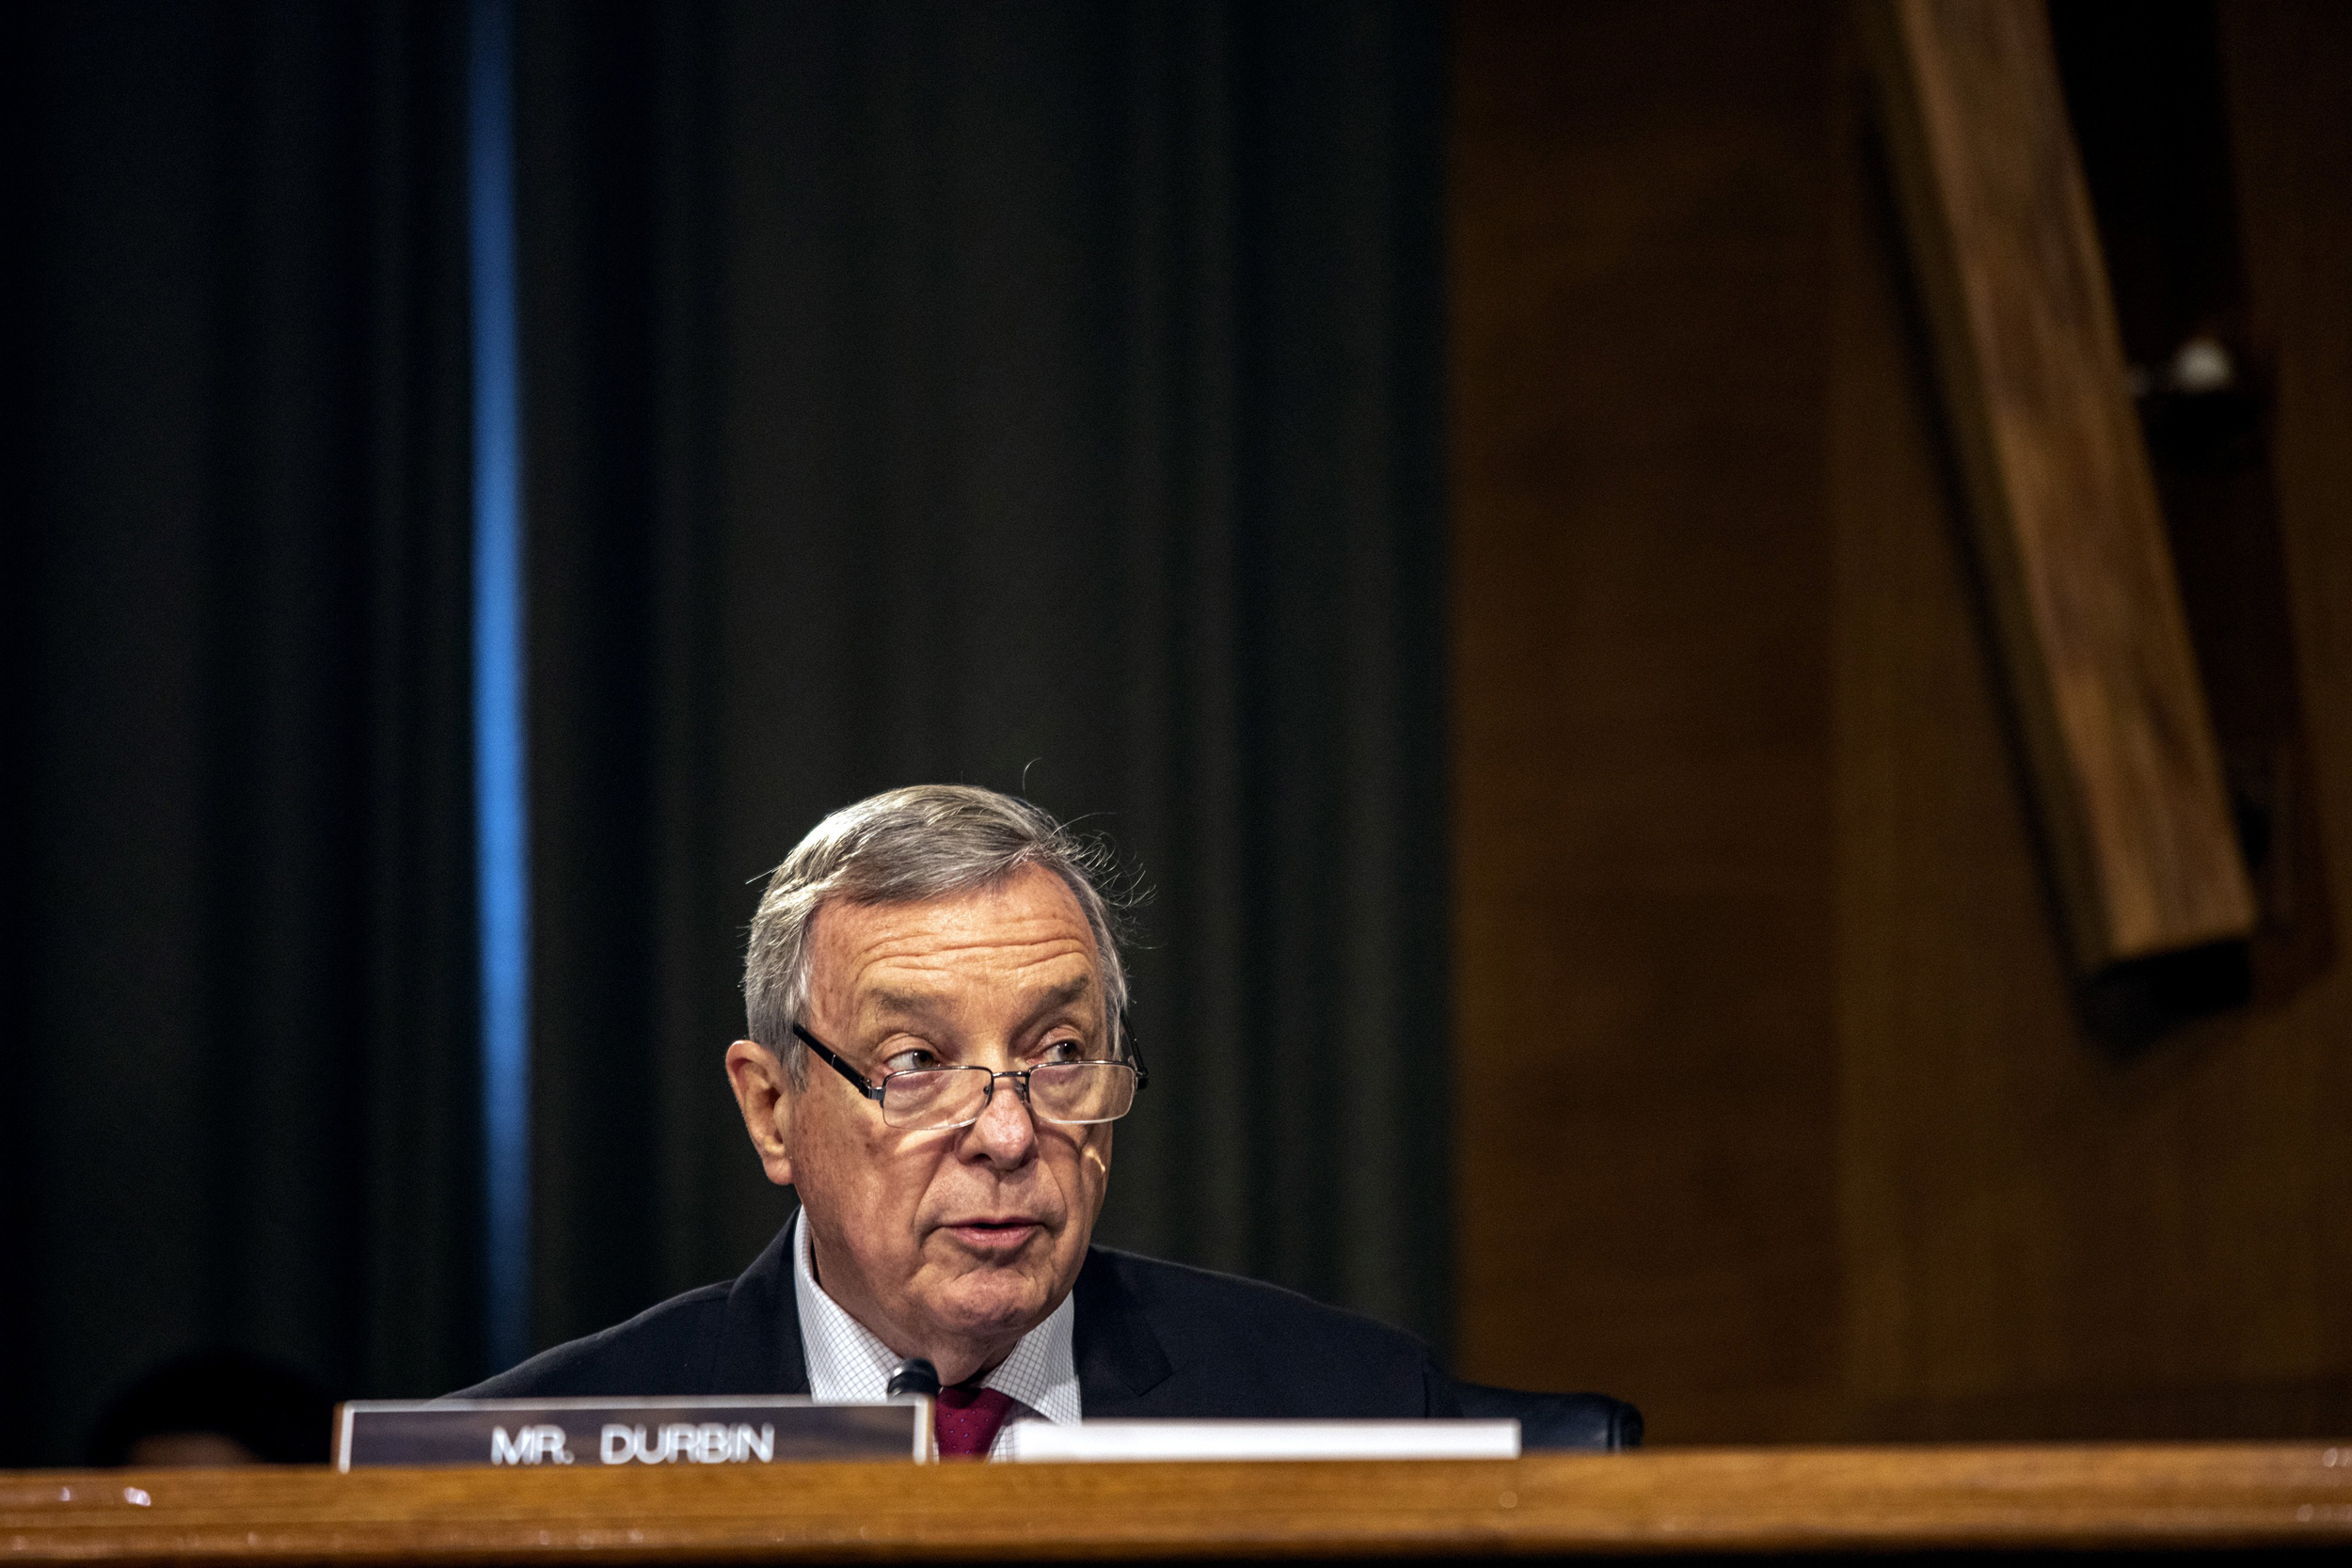 Some-Senate-Democrats-question-Durbin's-bid-to-helm-Judiciary-Committee